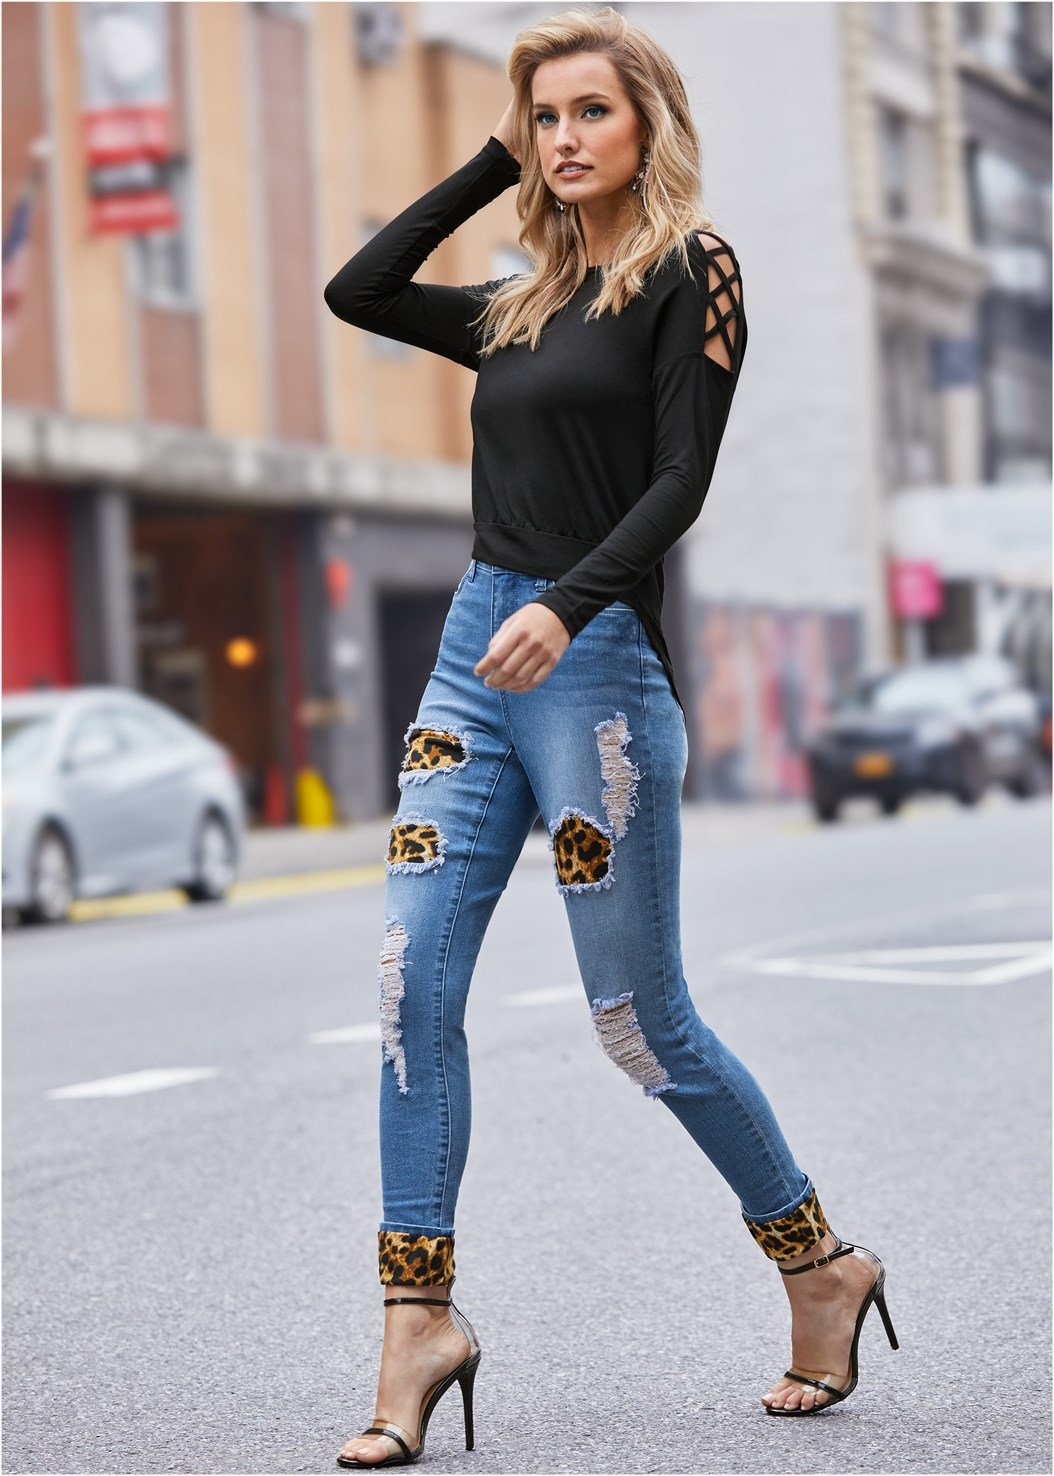 Sleeve Detail Top,Leopard Cuffed Jeans